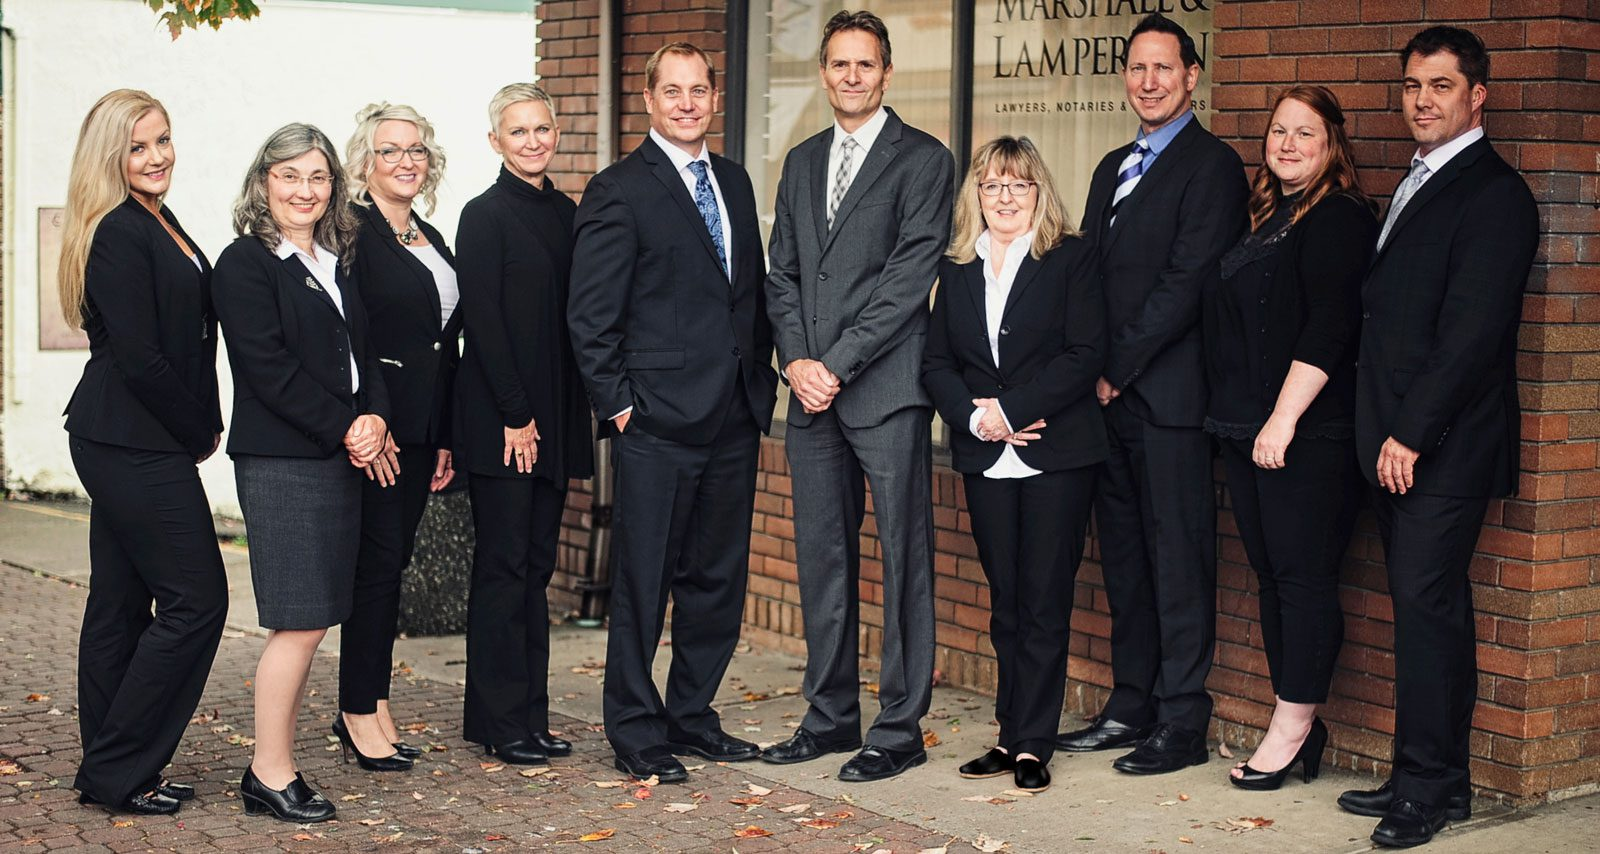 Group shot of staff at Marshall and Lamperson's, Qualicum Beach law office